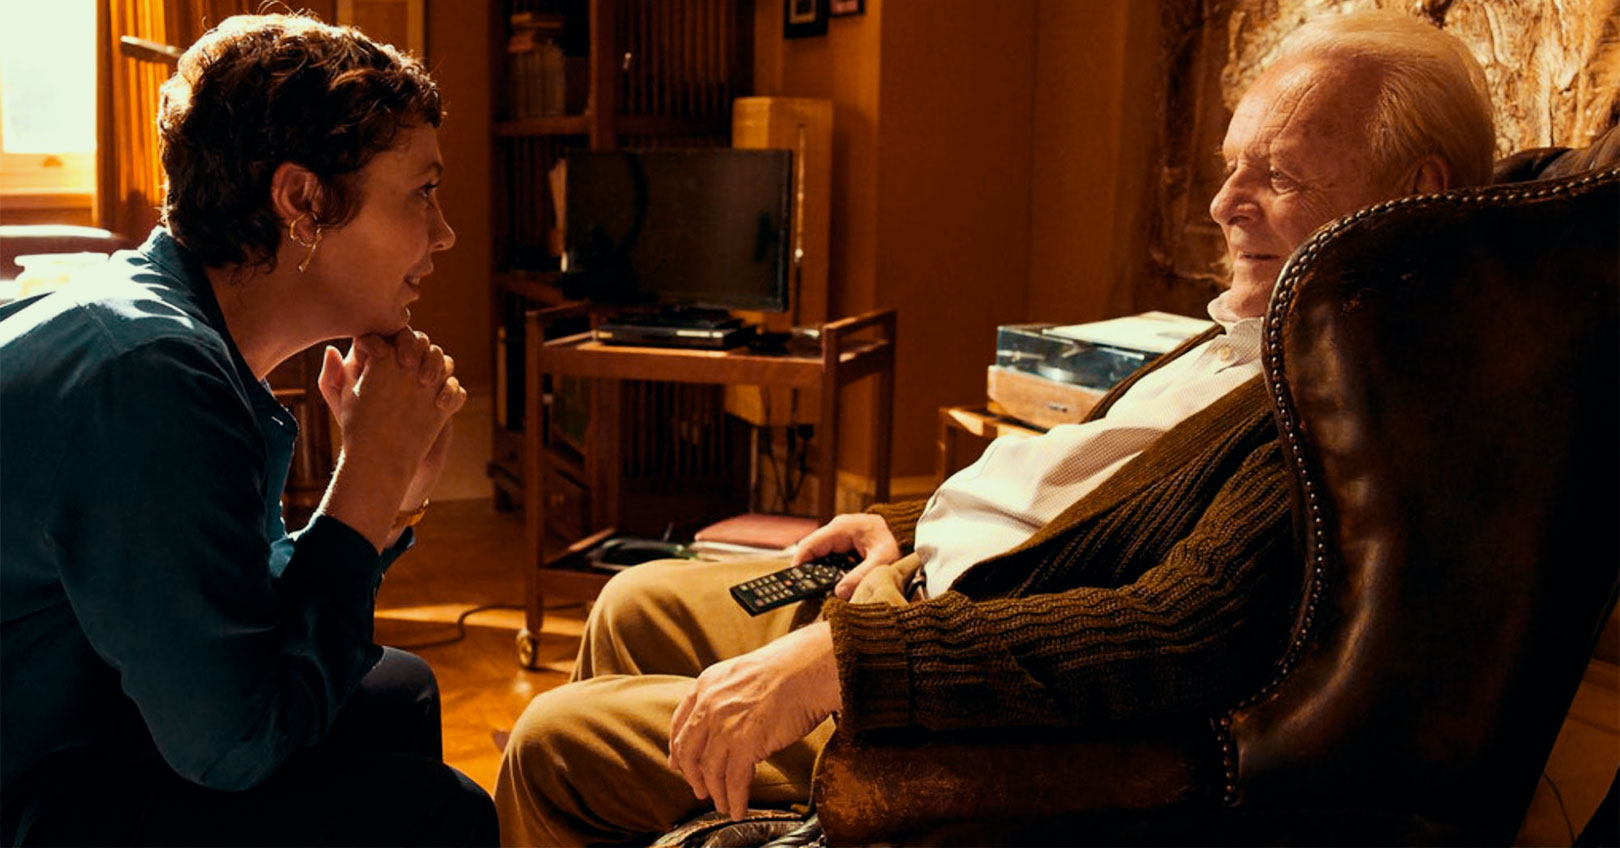 The Father - Olivia Colman and Anthony Hopkins